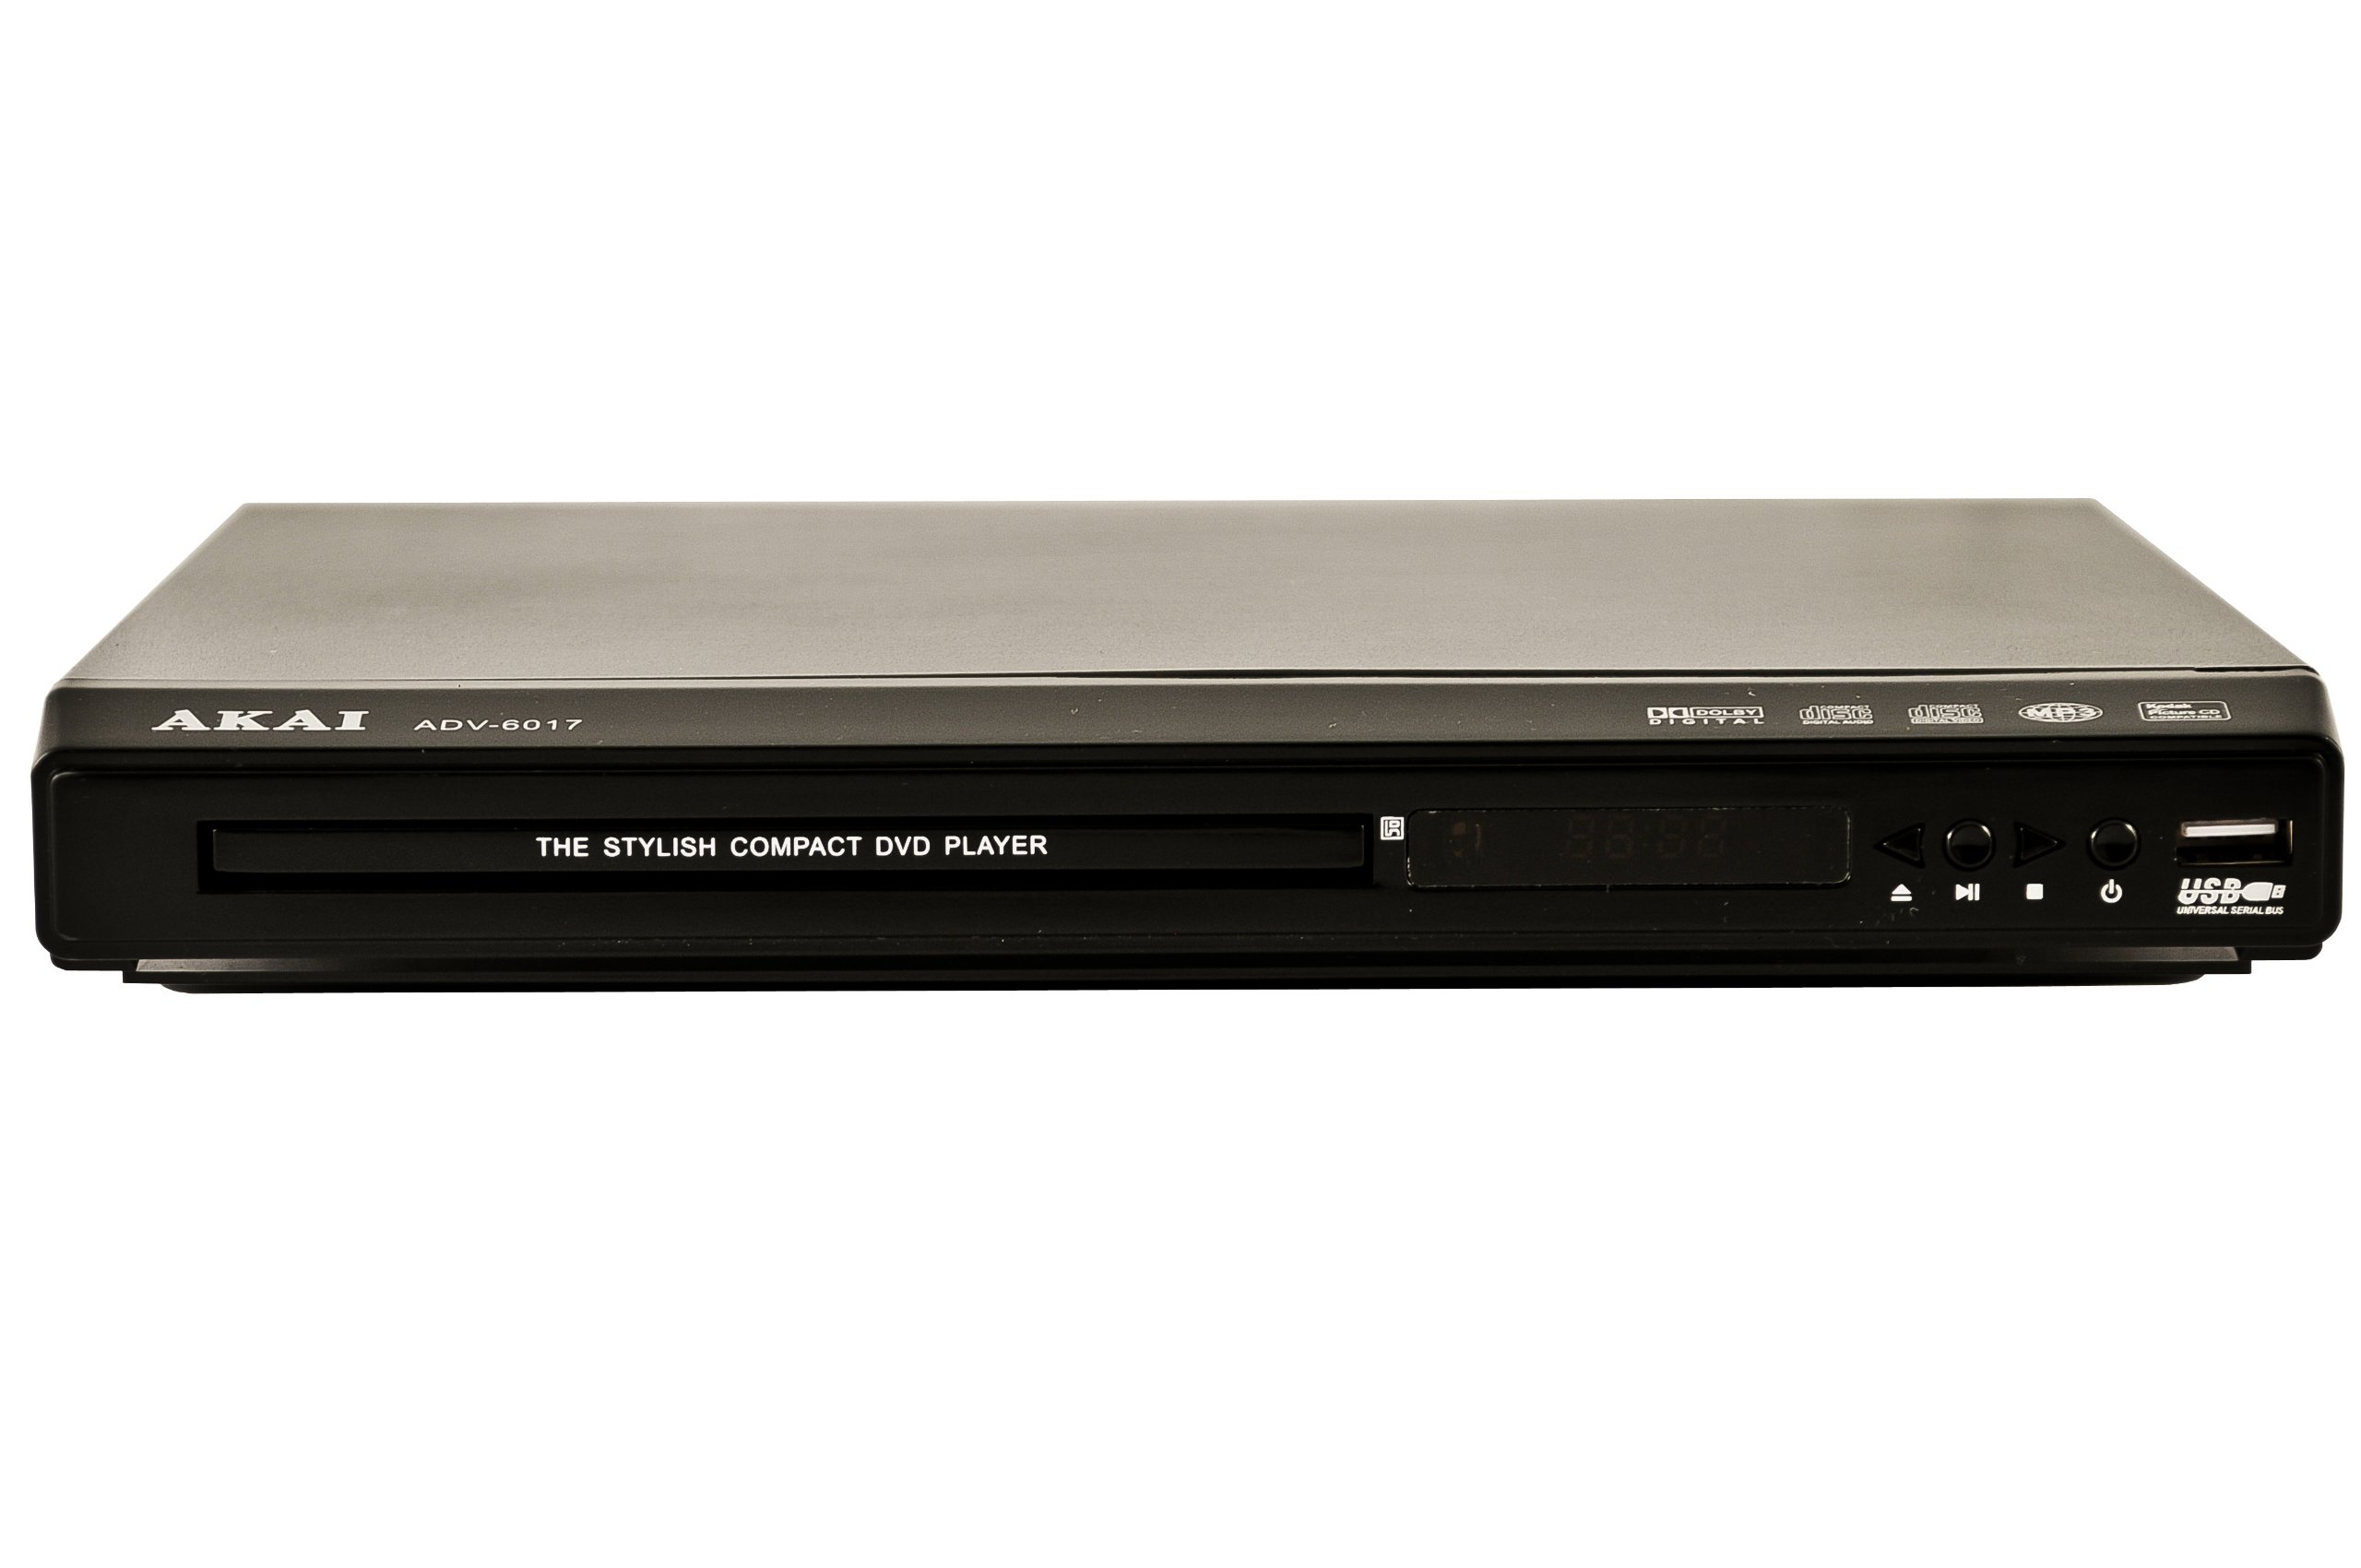 Akai ADV-6017- All Region Codefree Multi-System DVD Player 110/220V Worldwide Use. Plays DVD, SVCD, VCD, MP3, JPEG on Any TV - Remote